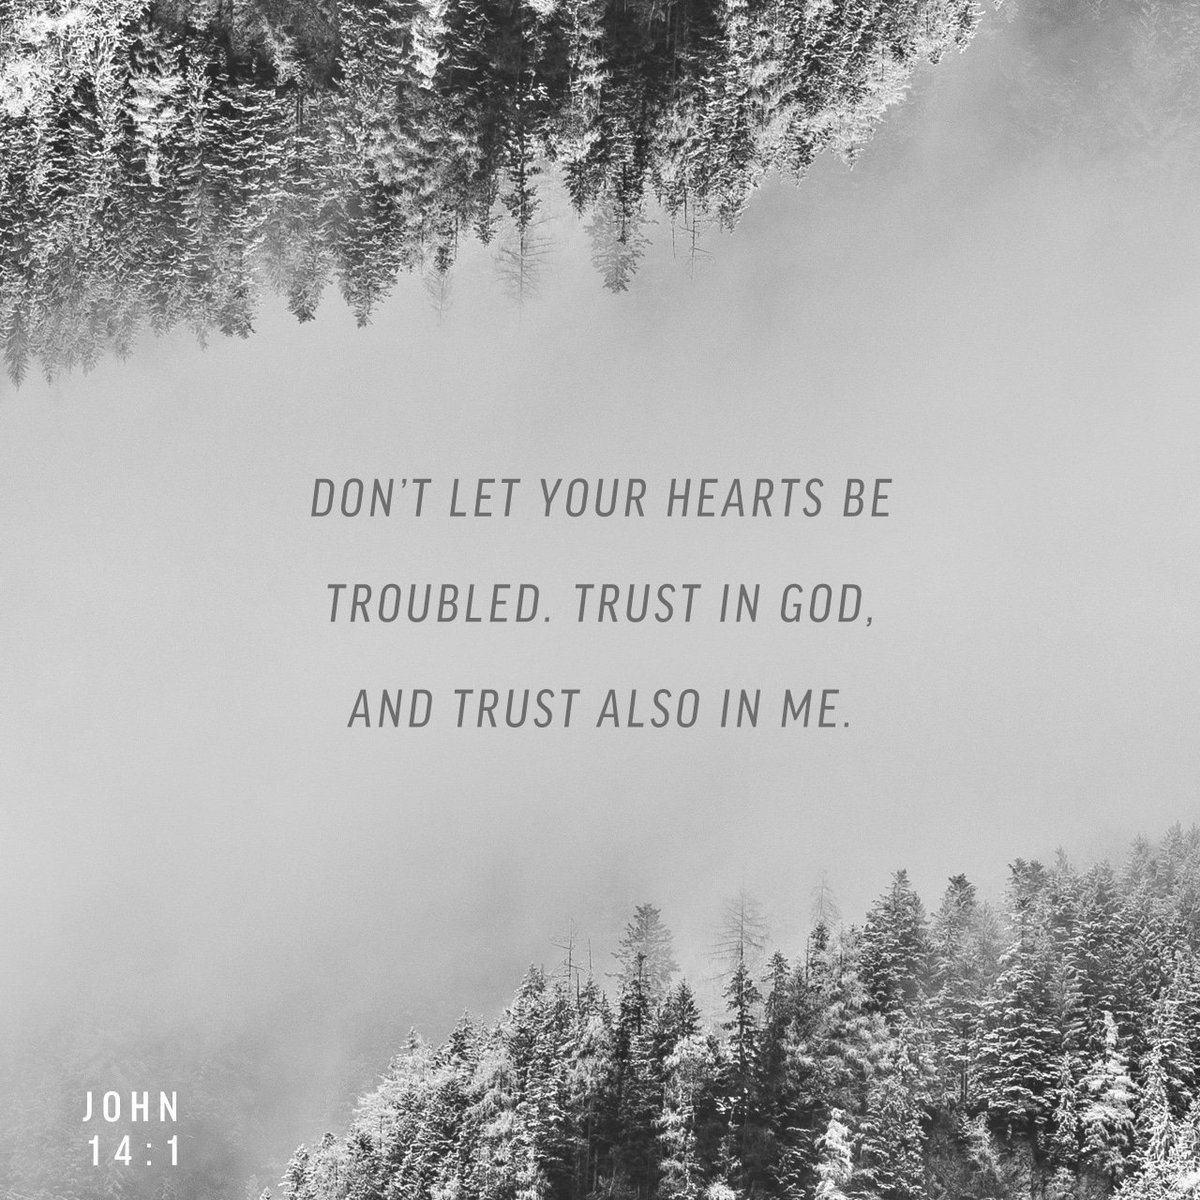 """""""Don't let your hearts be troubled. Trust in God, and trust also in me. https://t.co/Po14NN9i7o https://t.co/Z1DyfBfXP0"""